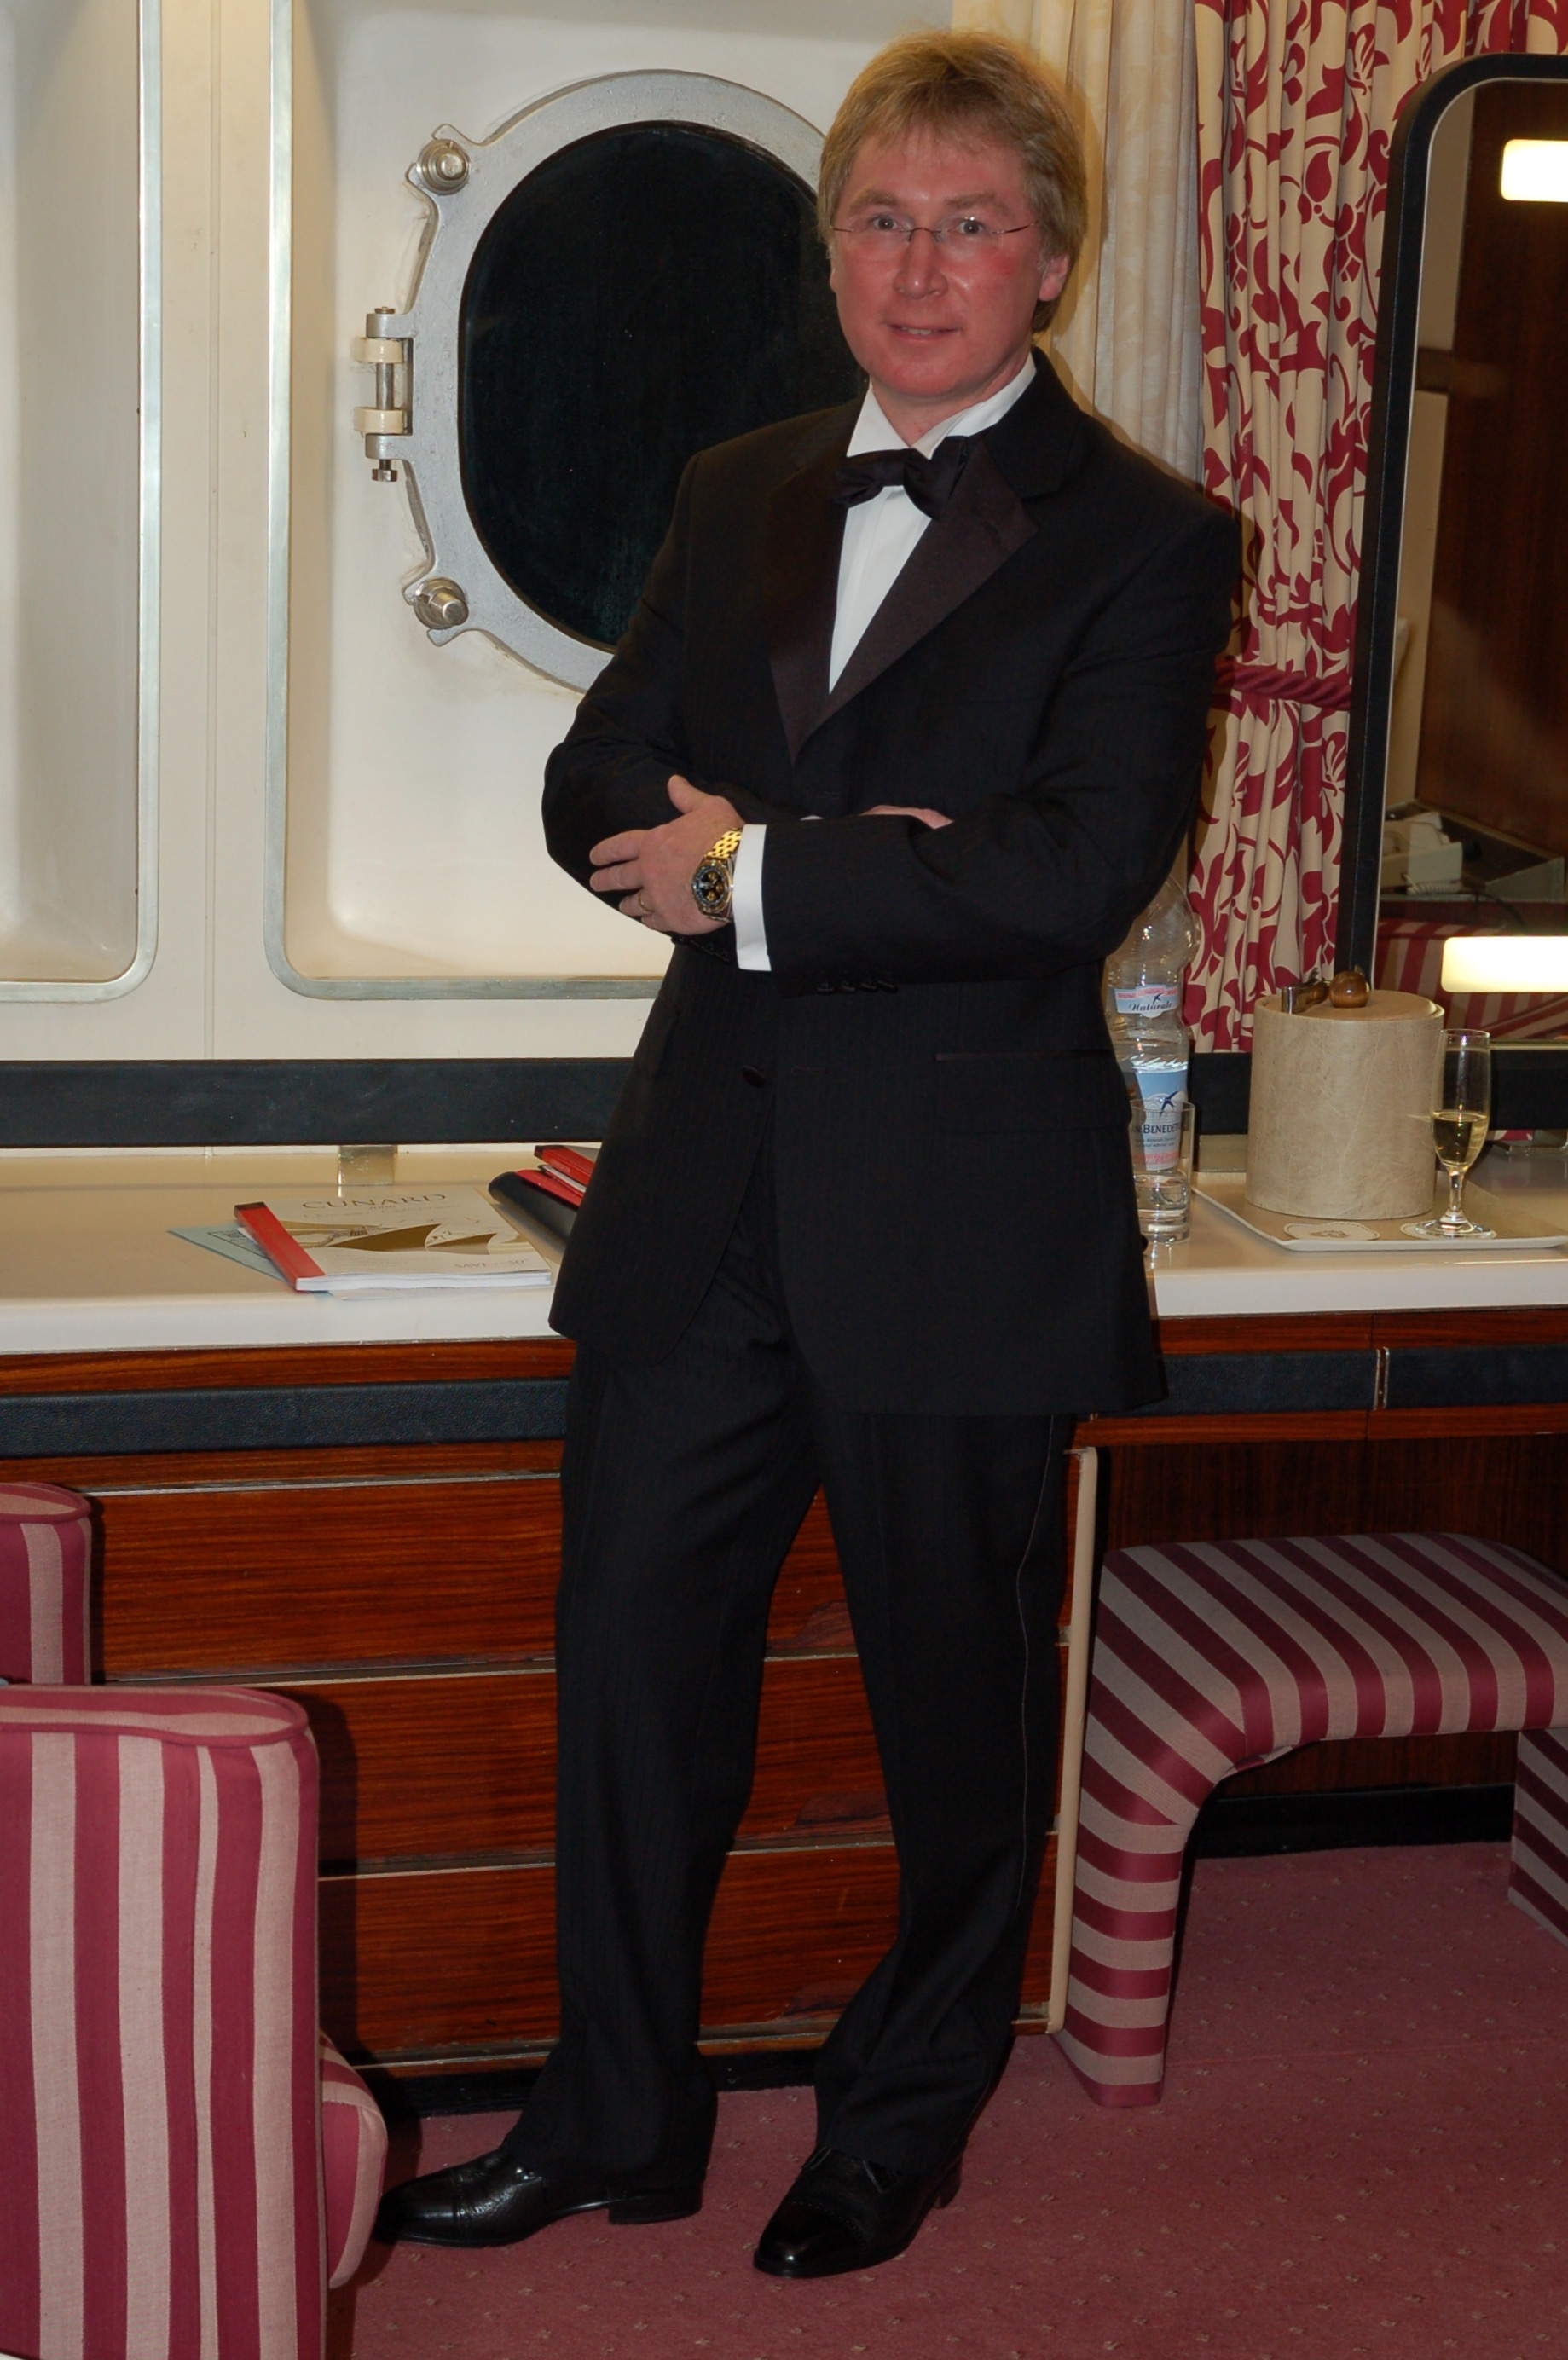 Vince stood, dresed in a classic Tuxedo, arms folded, in a ships cabin